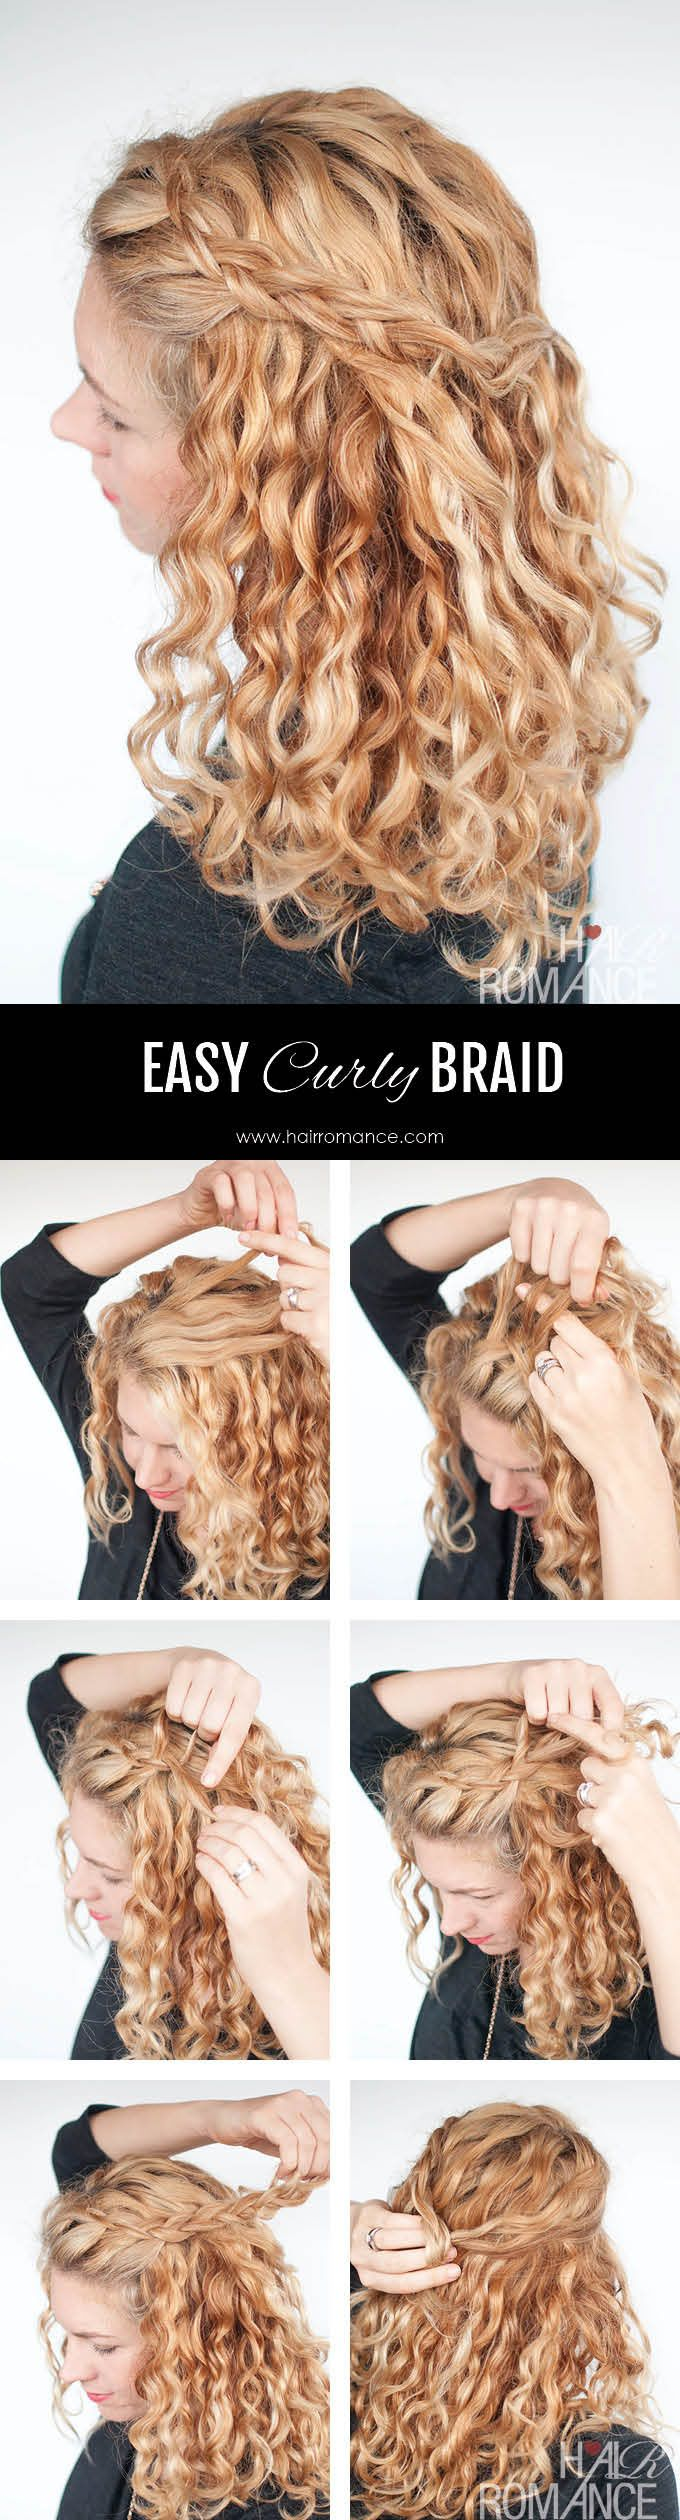 Second Day Curly Hairstyles Hair Romance 30 Curly Hairstyles In 30 Days Day 27 Braid